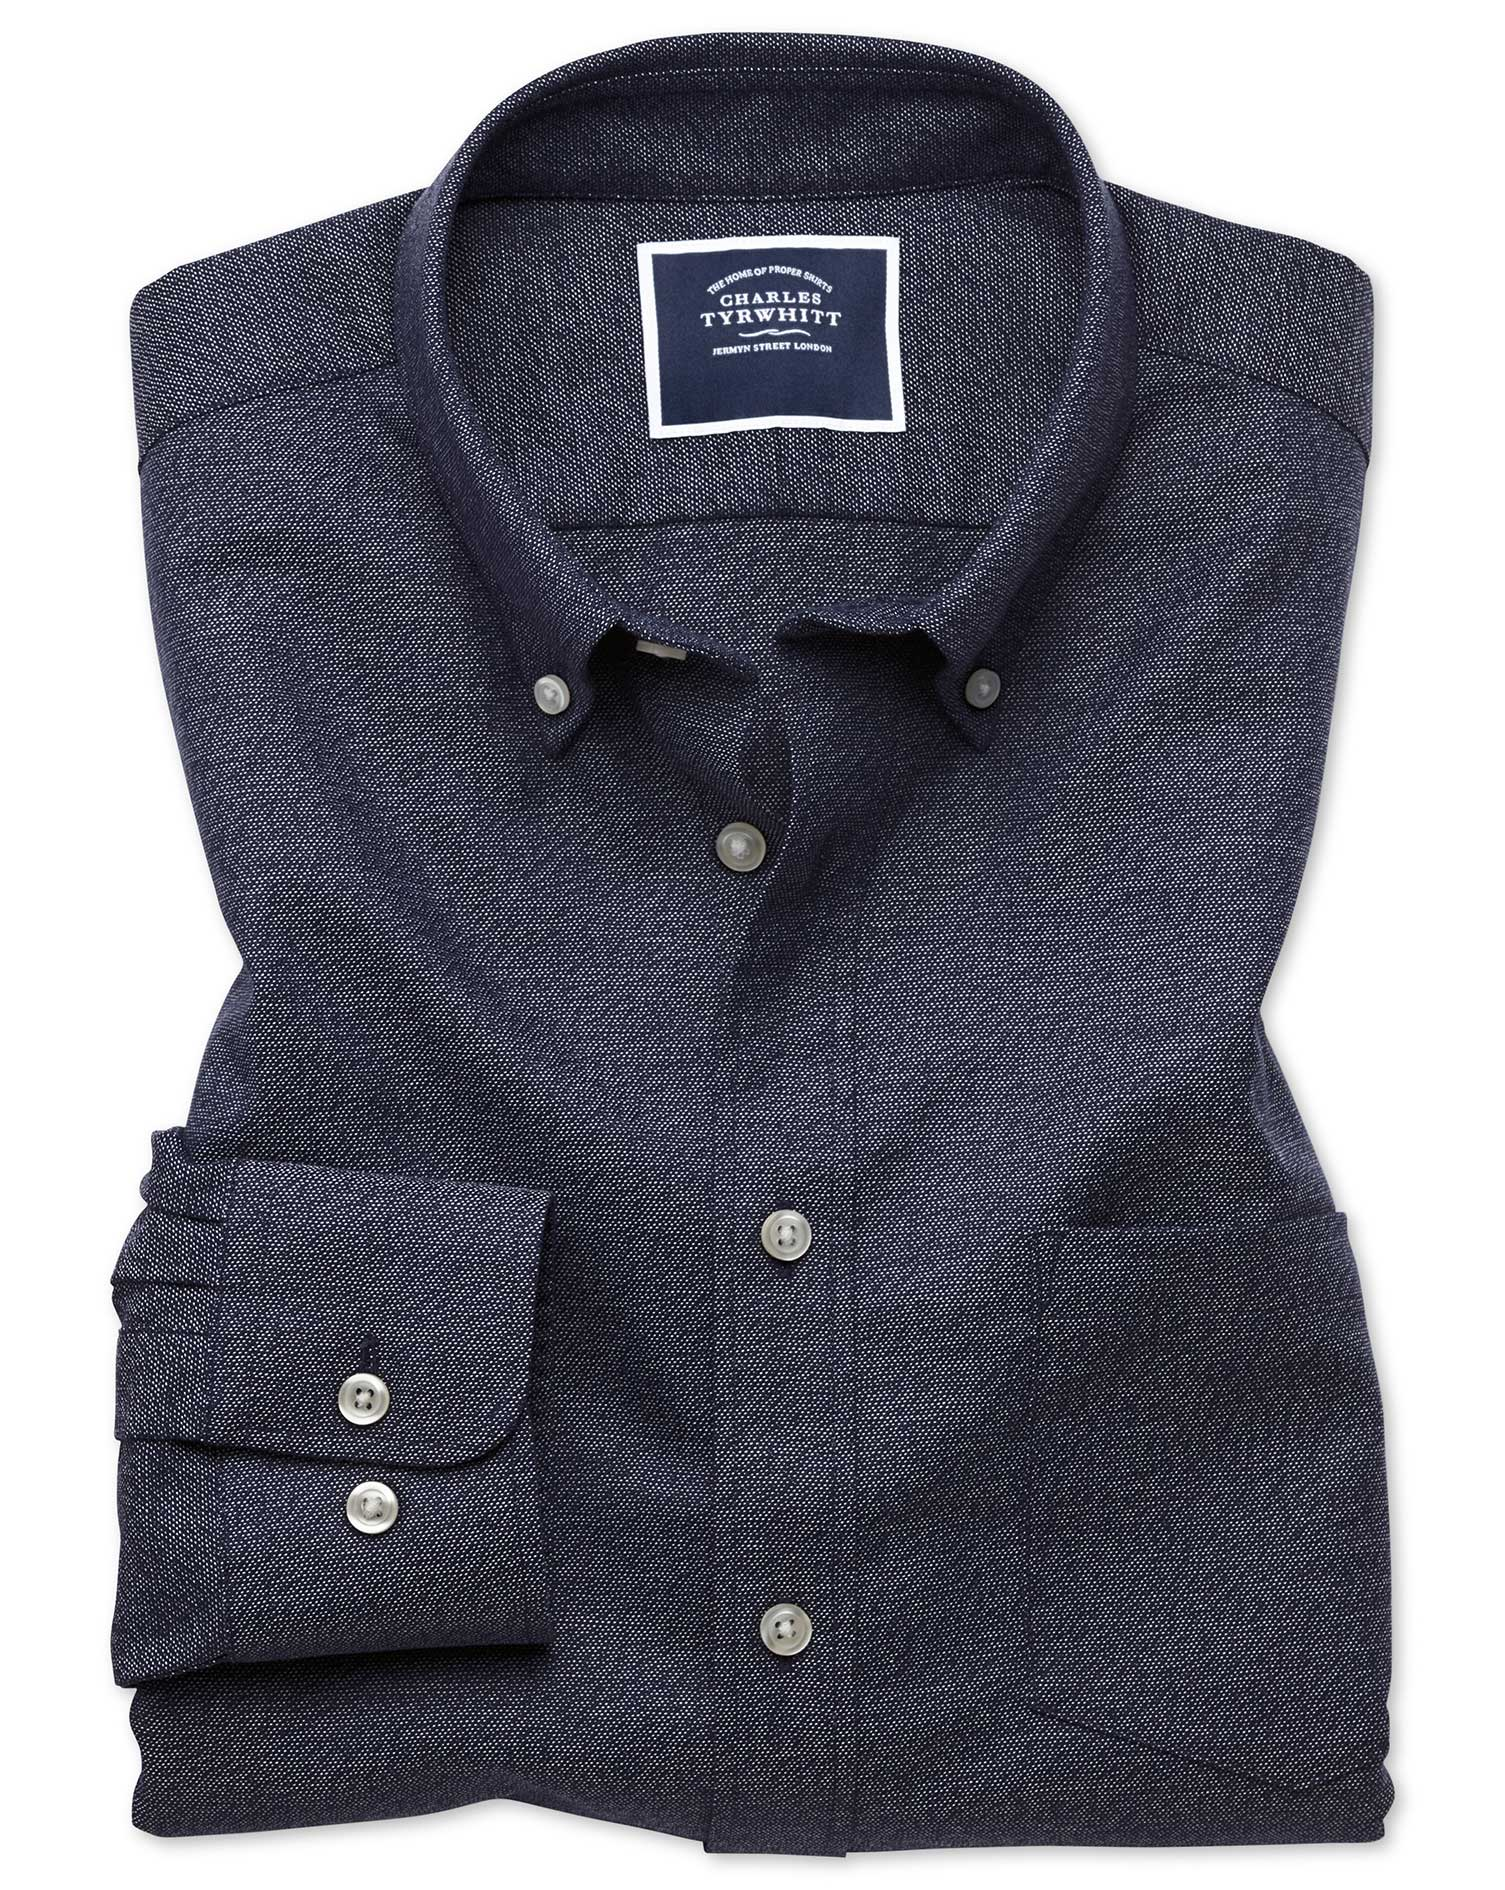 Classic Fit Dark Navy Plain Soft Washed Non-Iron Twill Cotton Shirt Single Cuff Size Medium by Charl